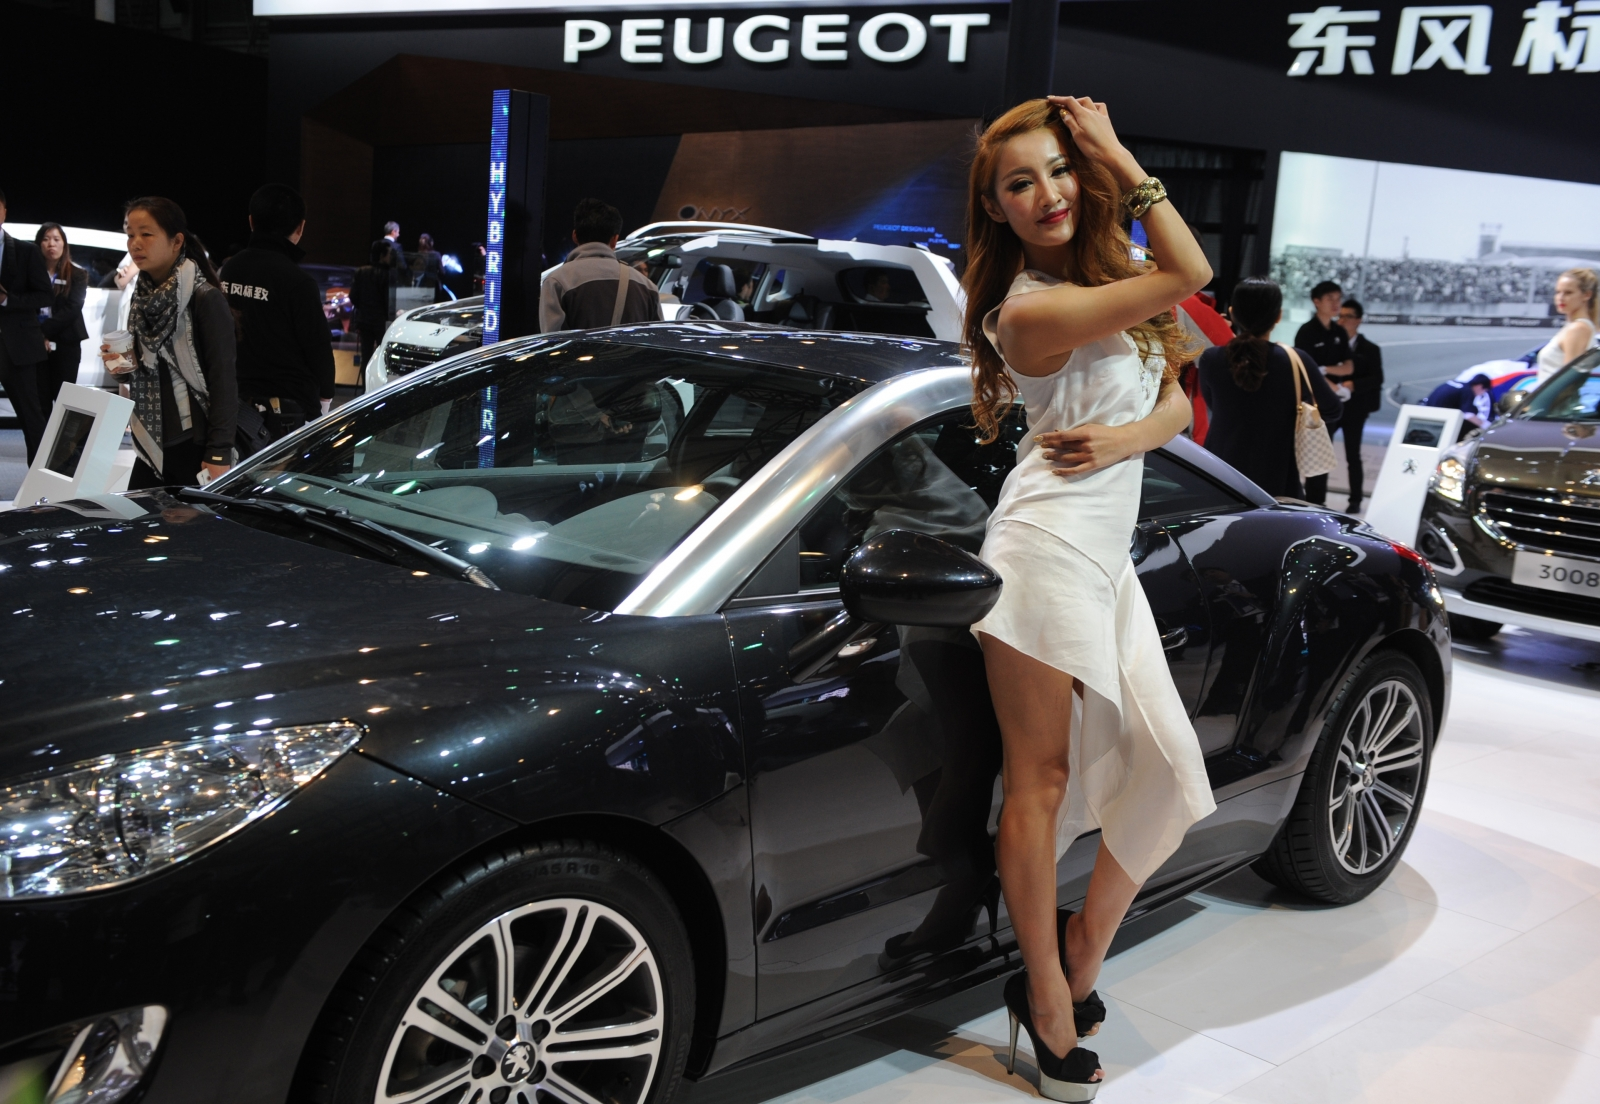 A model poses beside a vehile at the 2013 Shanghai car show (Getty)